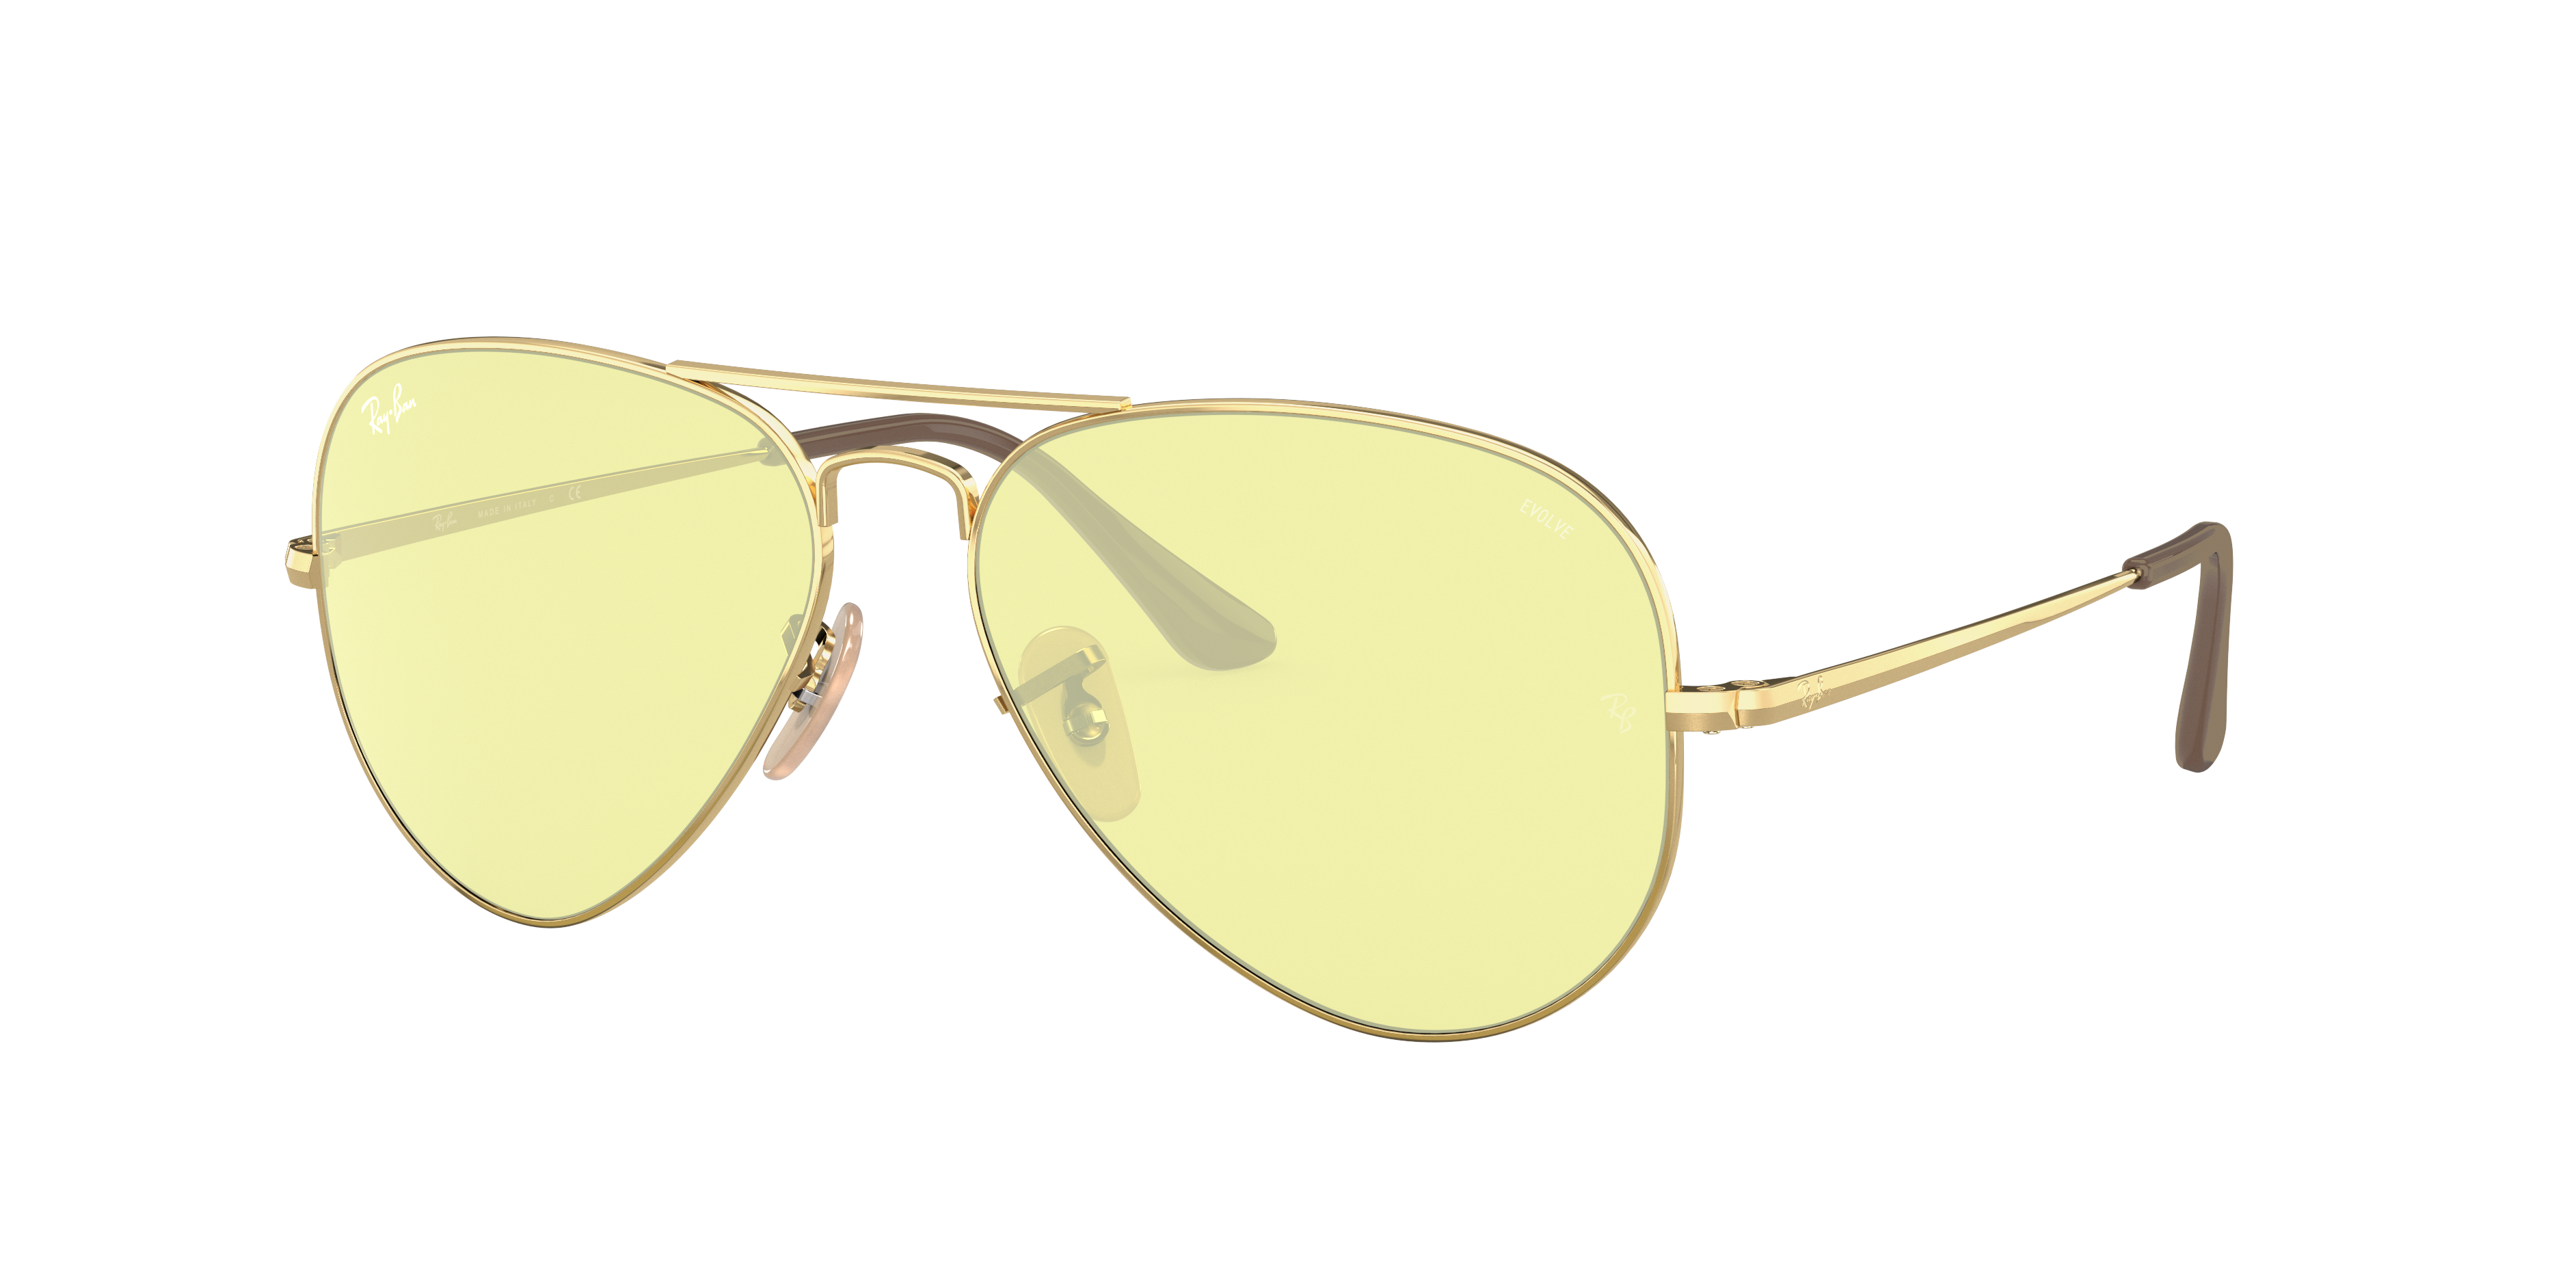 Ray-Ban Rb3689 Solid Evolve Gold, Yellow Lenses - RB3689